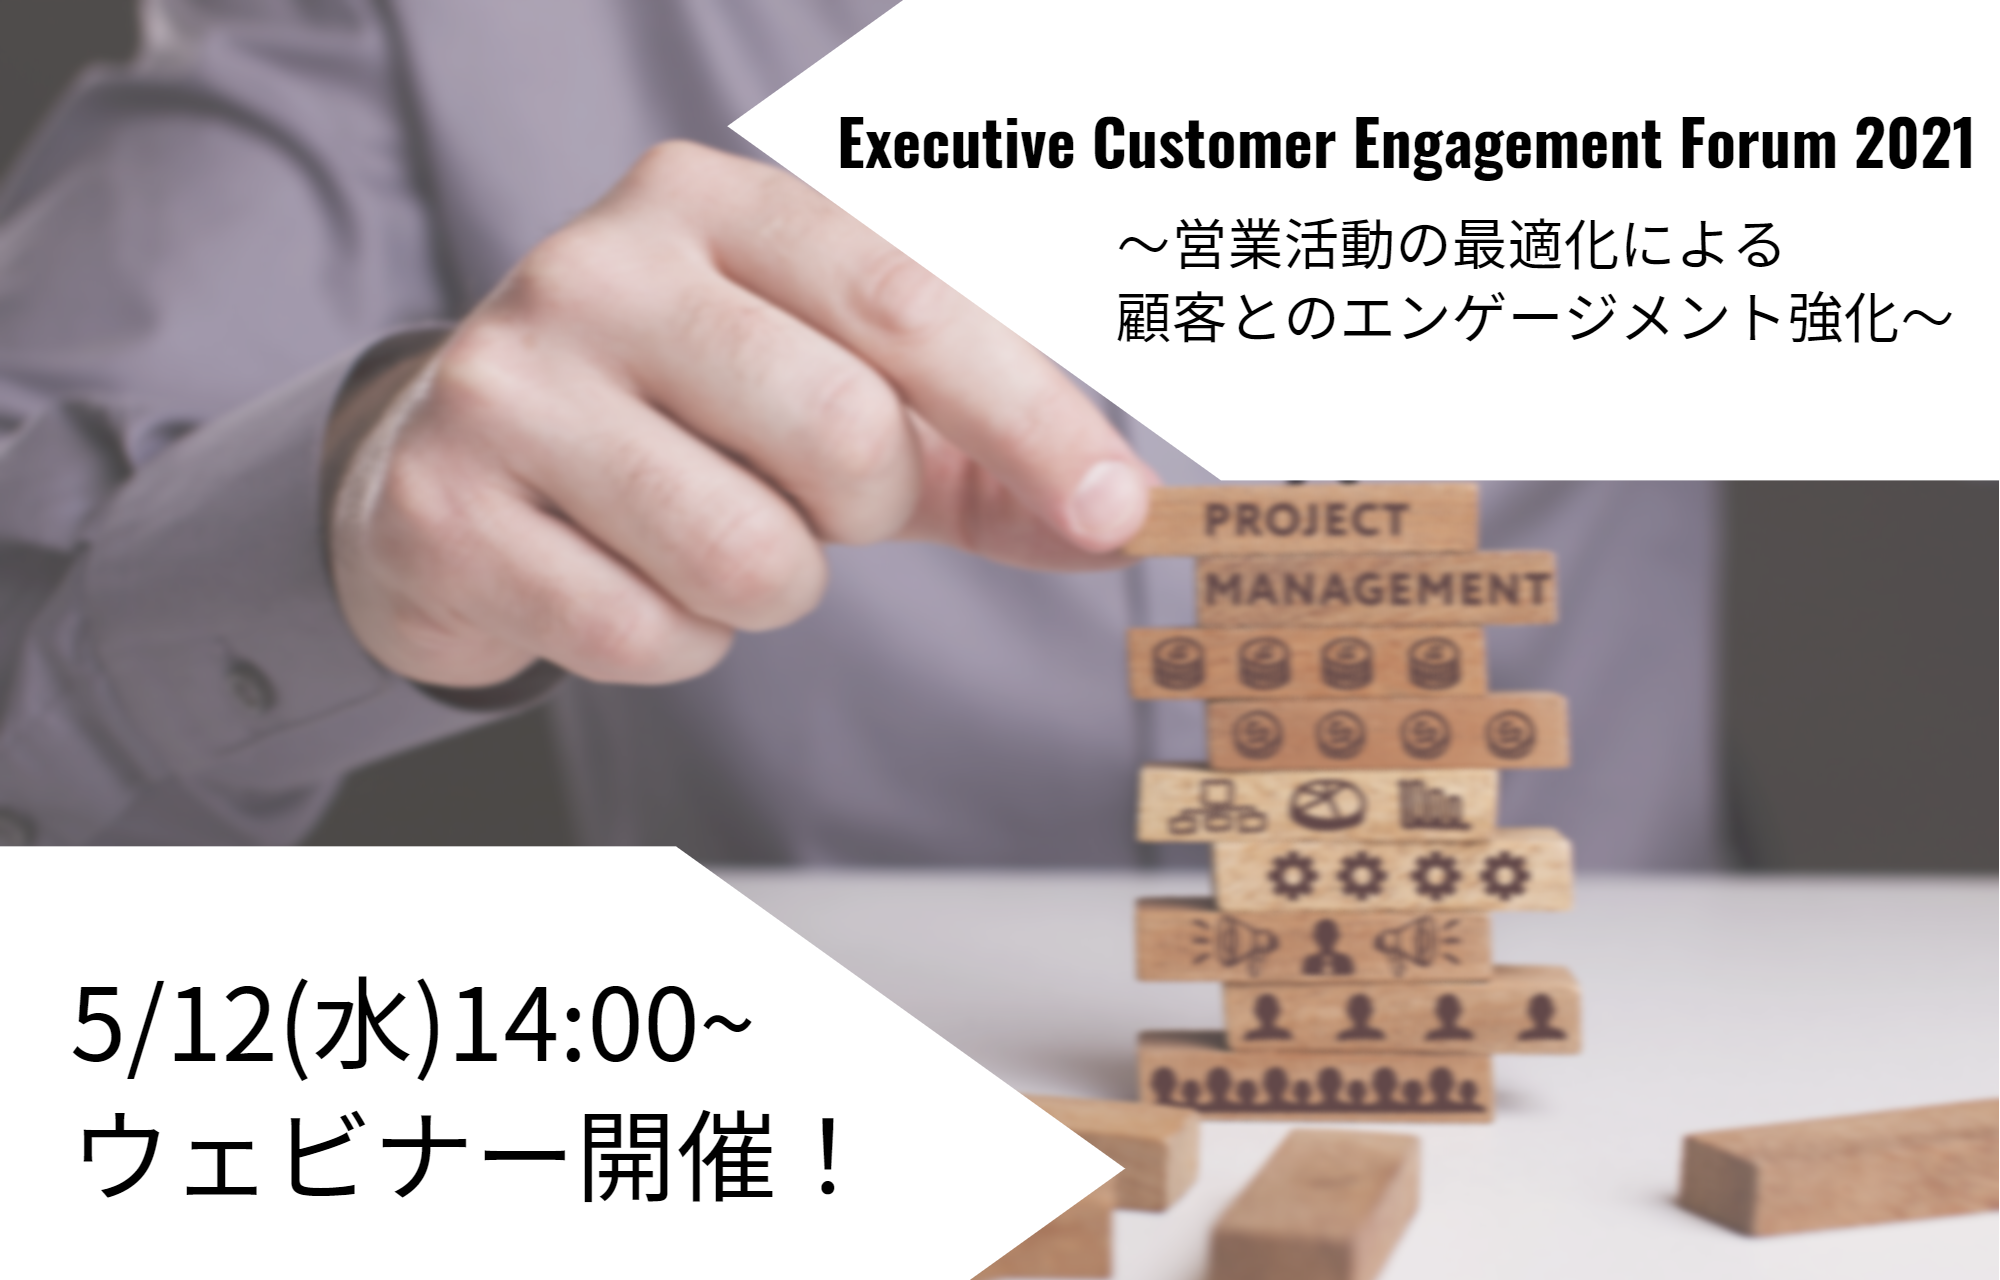 Executive Customer Engagement Forum 2021